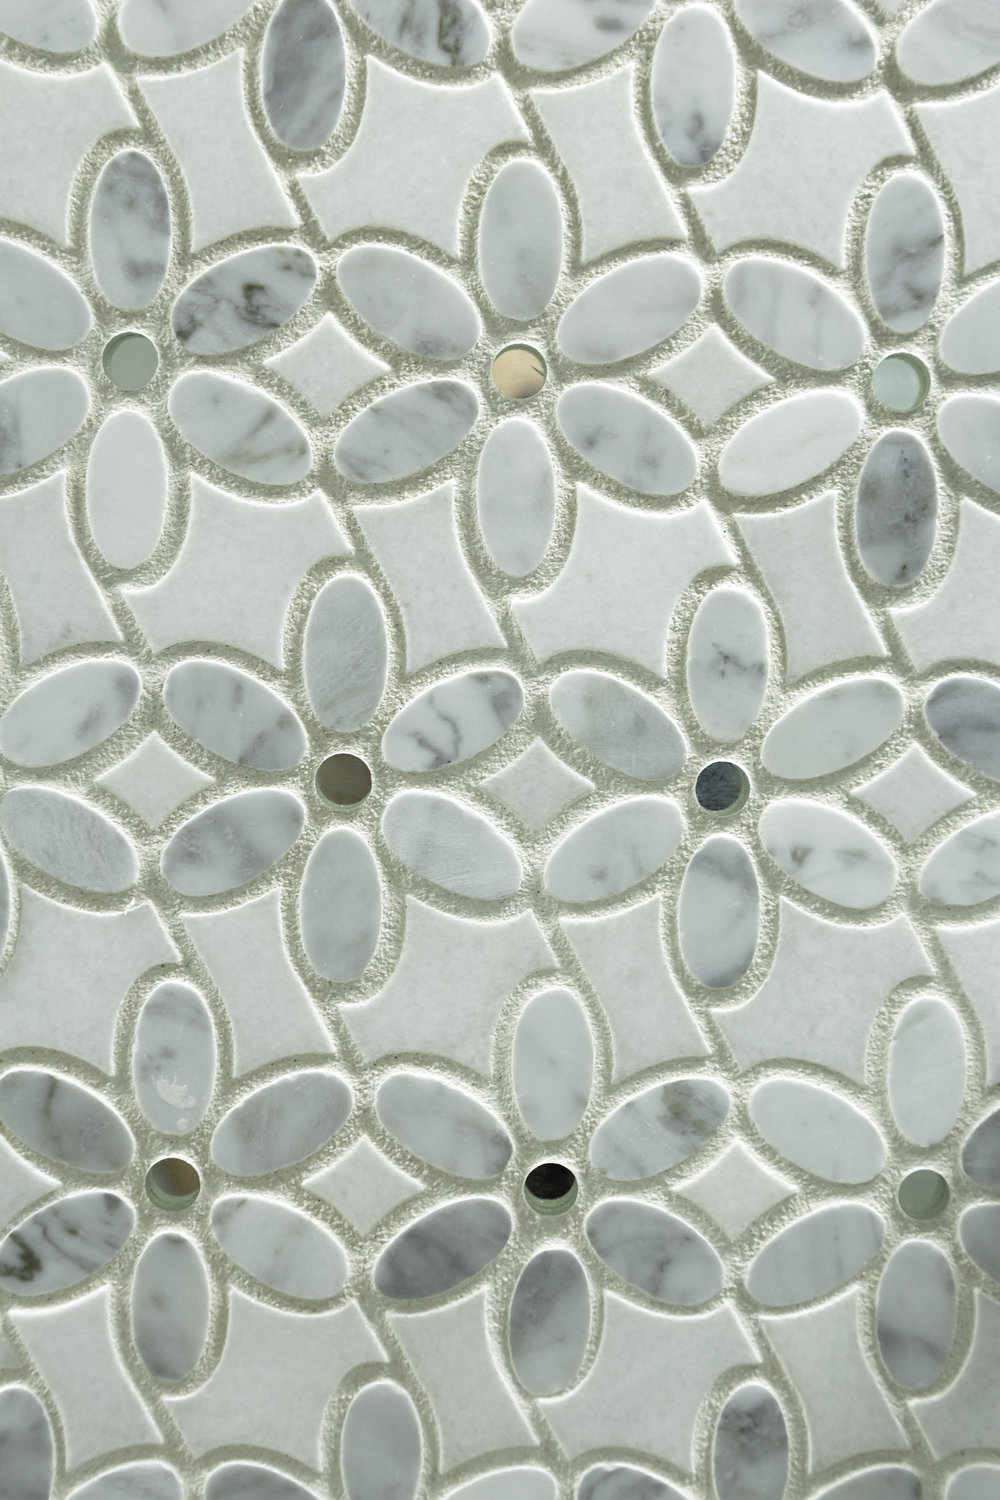 Decorative wall tile styled like flowers